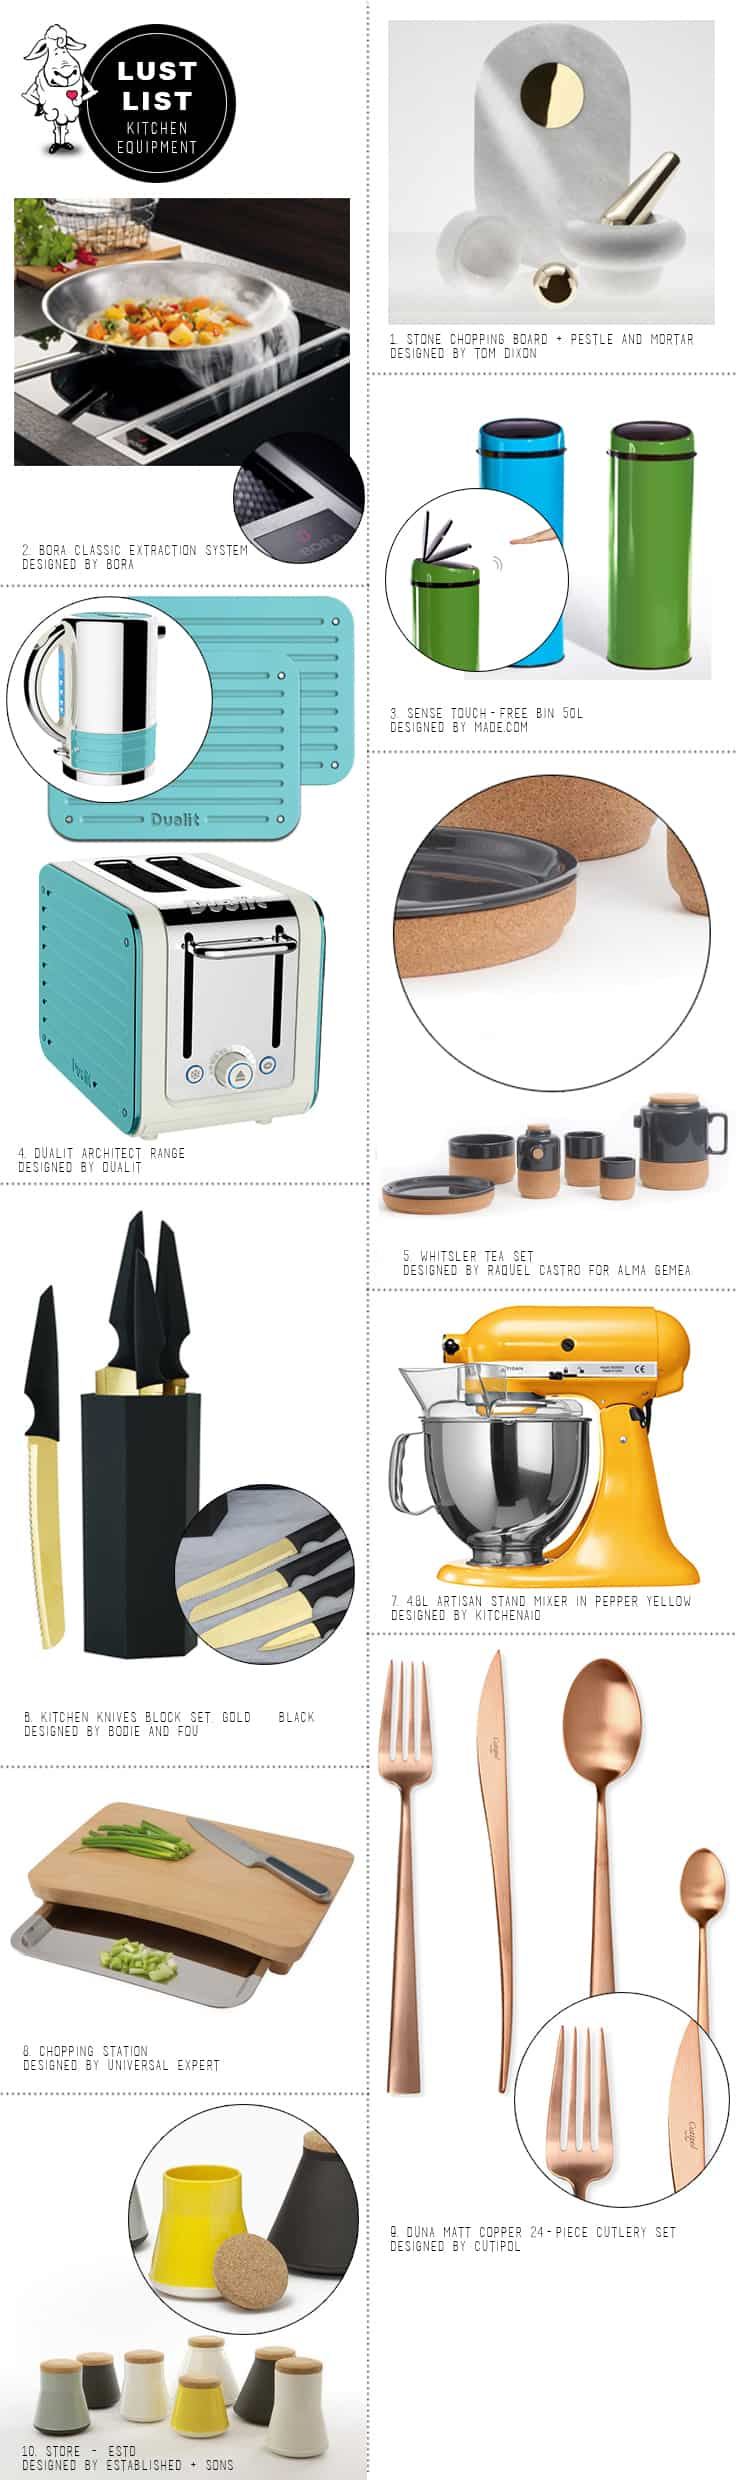 Lust List : Kitchen Equipment